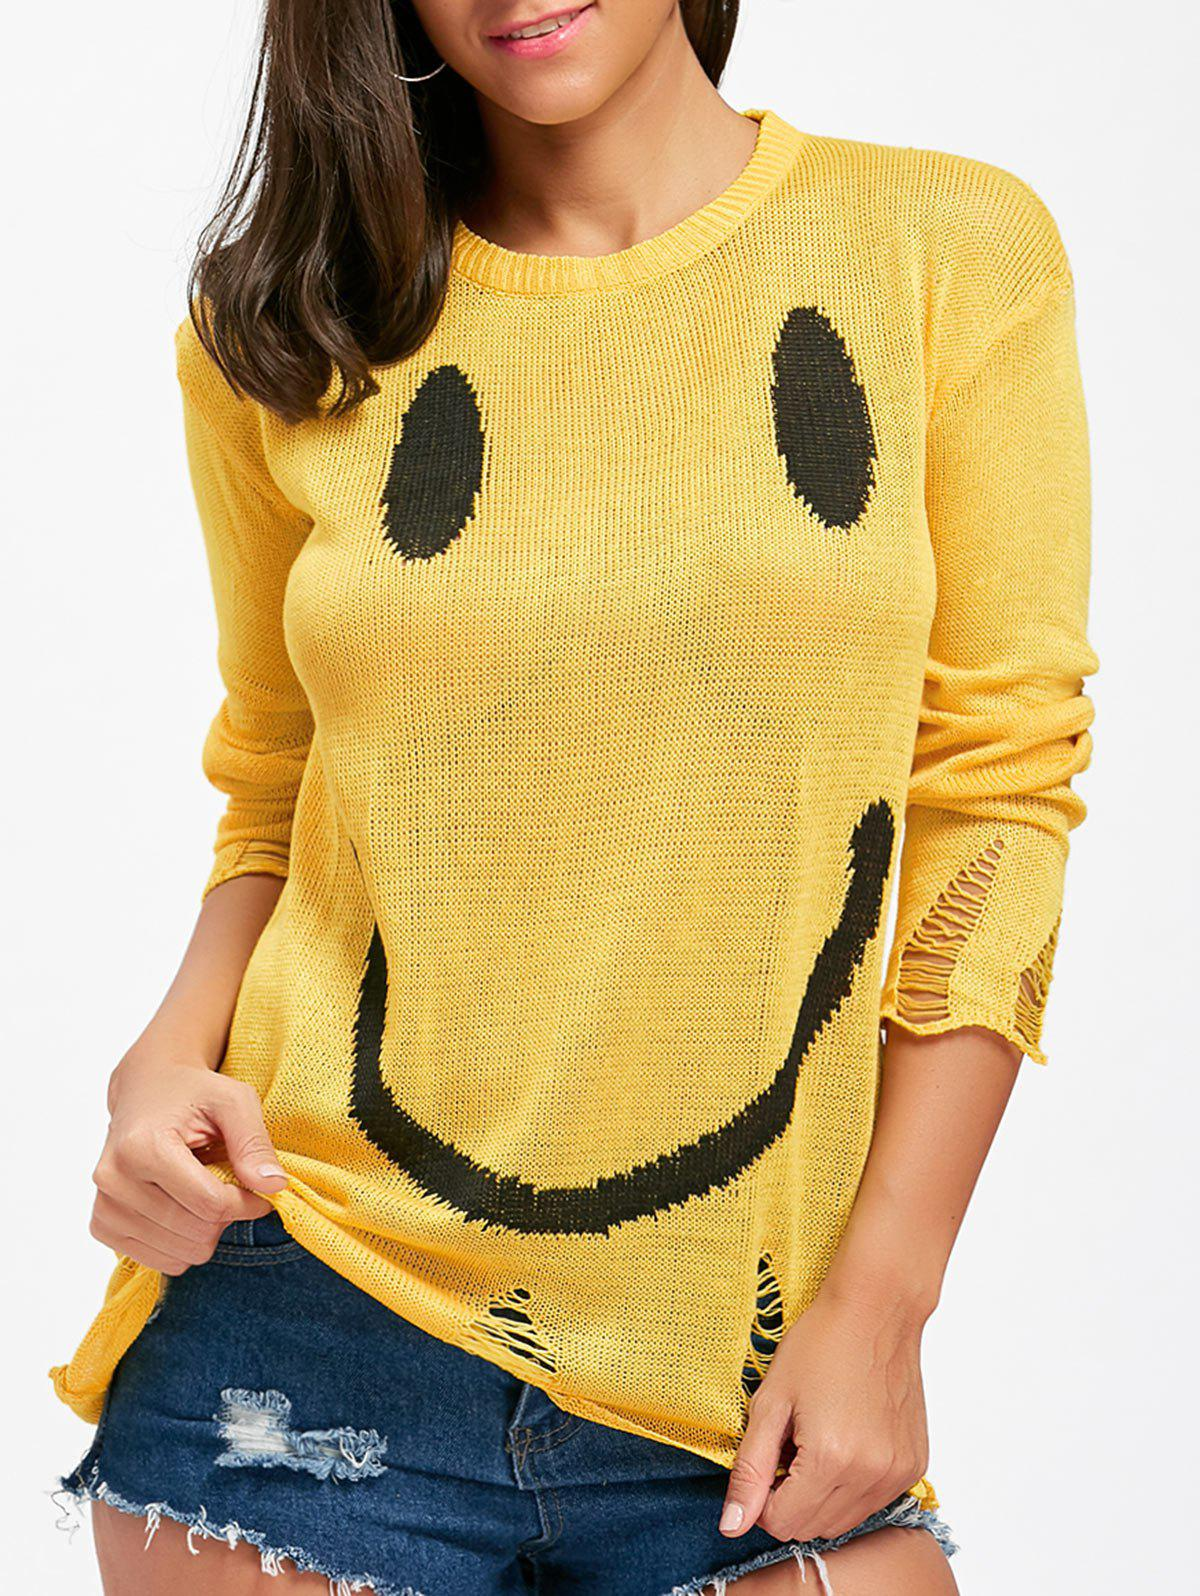 Trendy Distressed Smile Face Knitwear